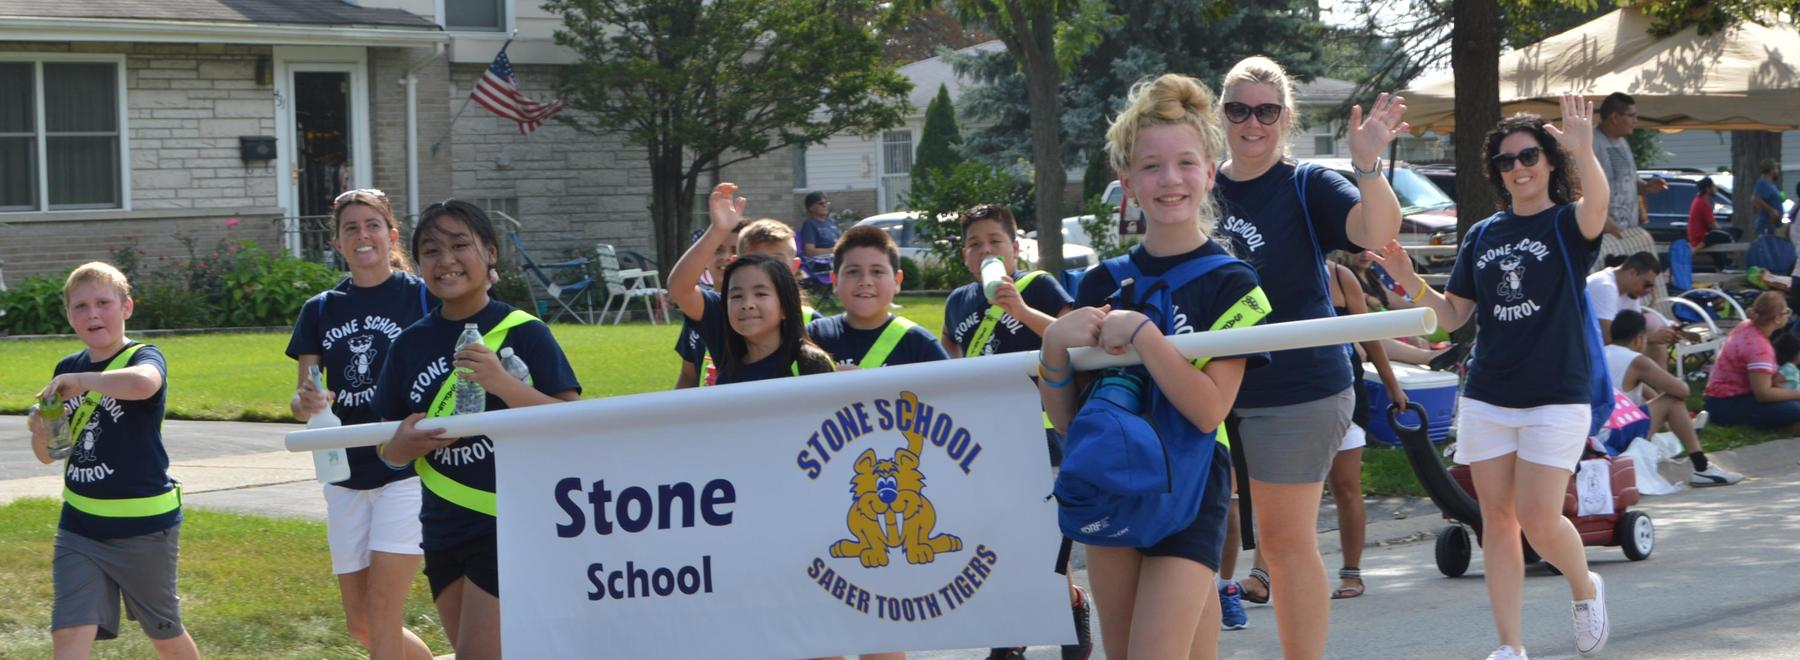 Stone in parade